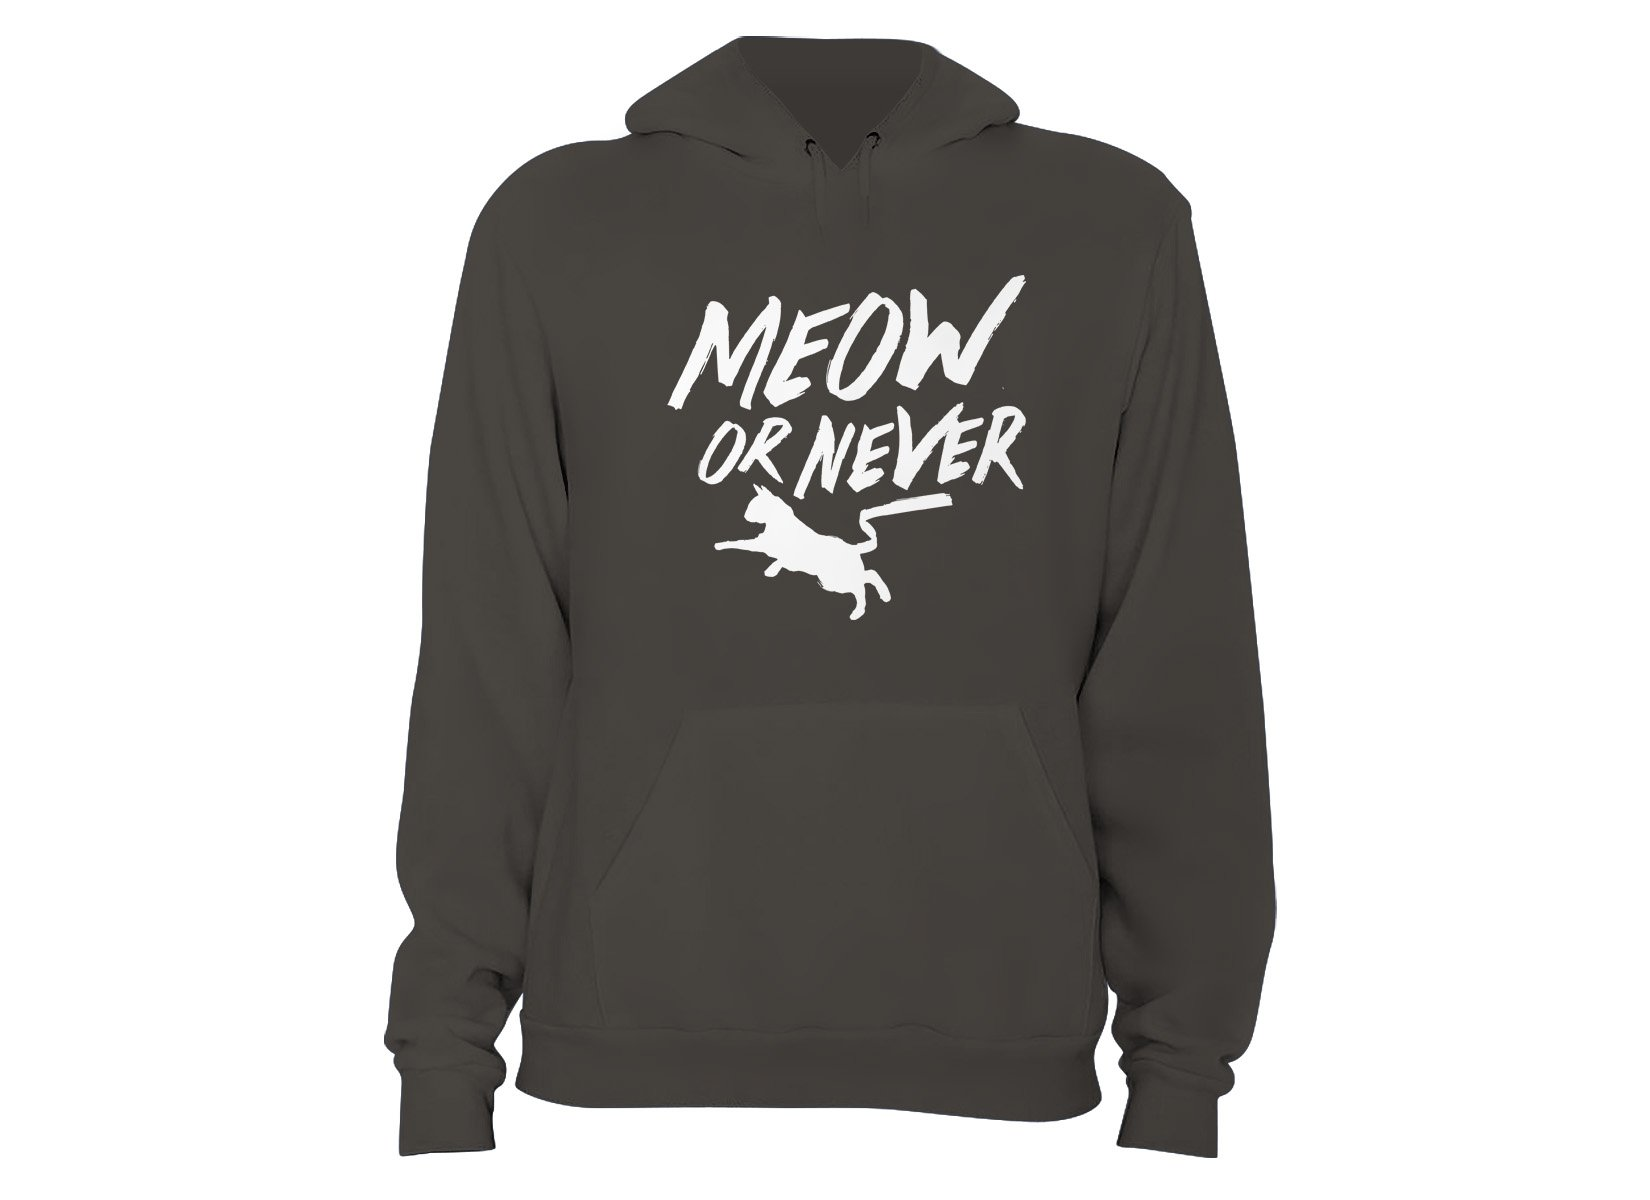 Meow Or Never on Hoodie